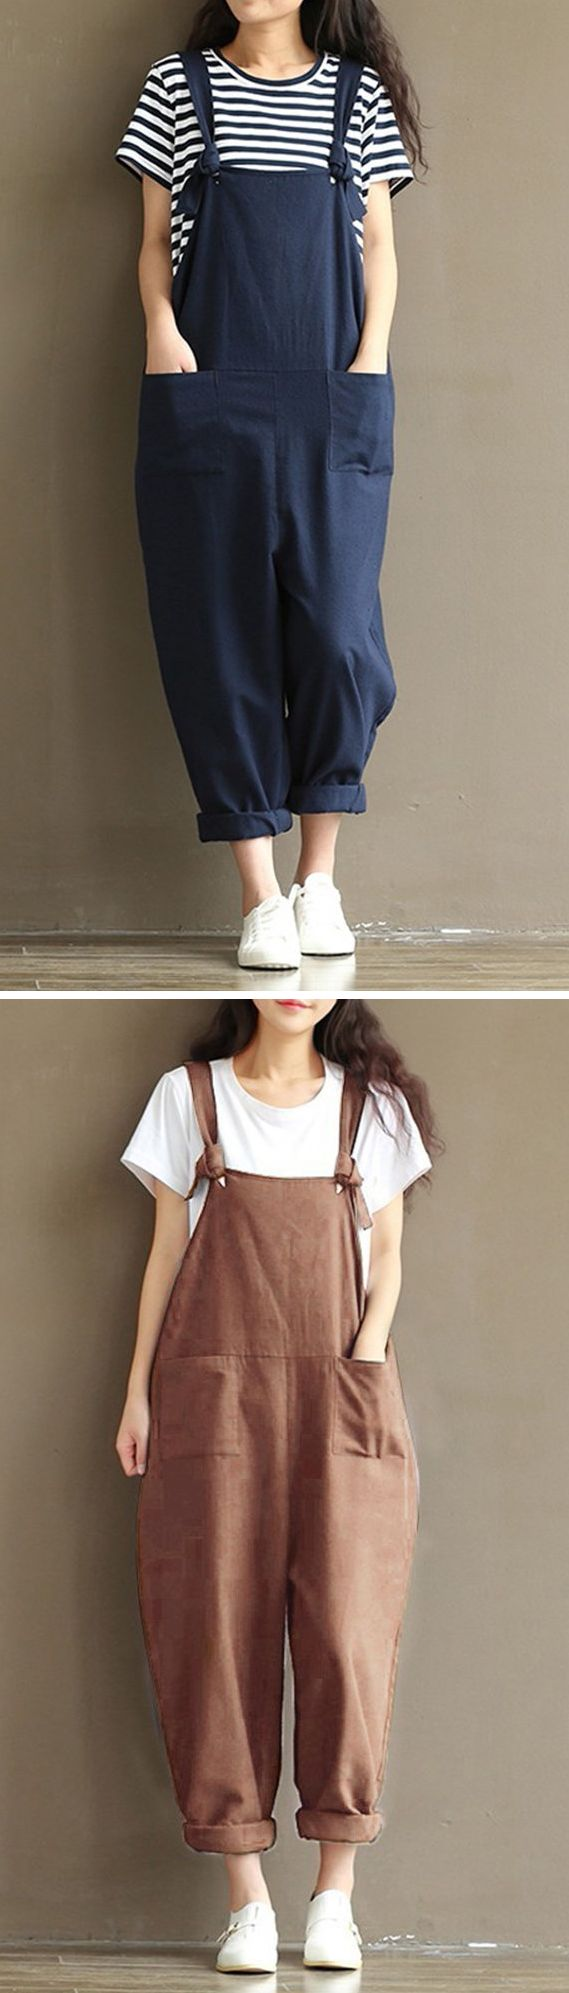 US$ 20.68 Casual Solid Strap Pocket Jumpsuit Trousers Overalls For Women